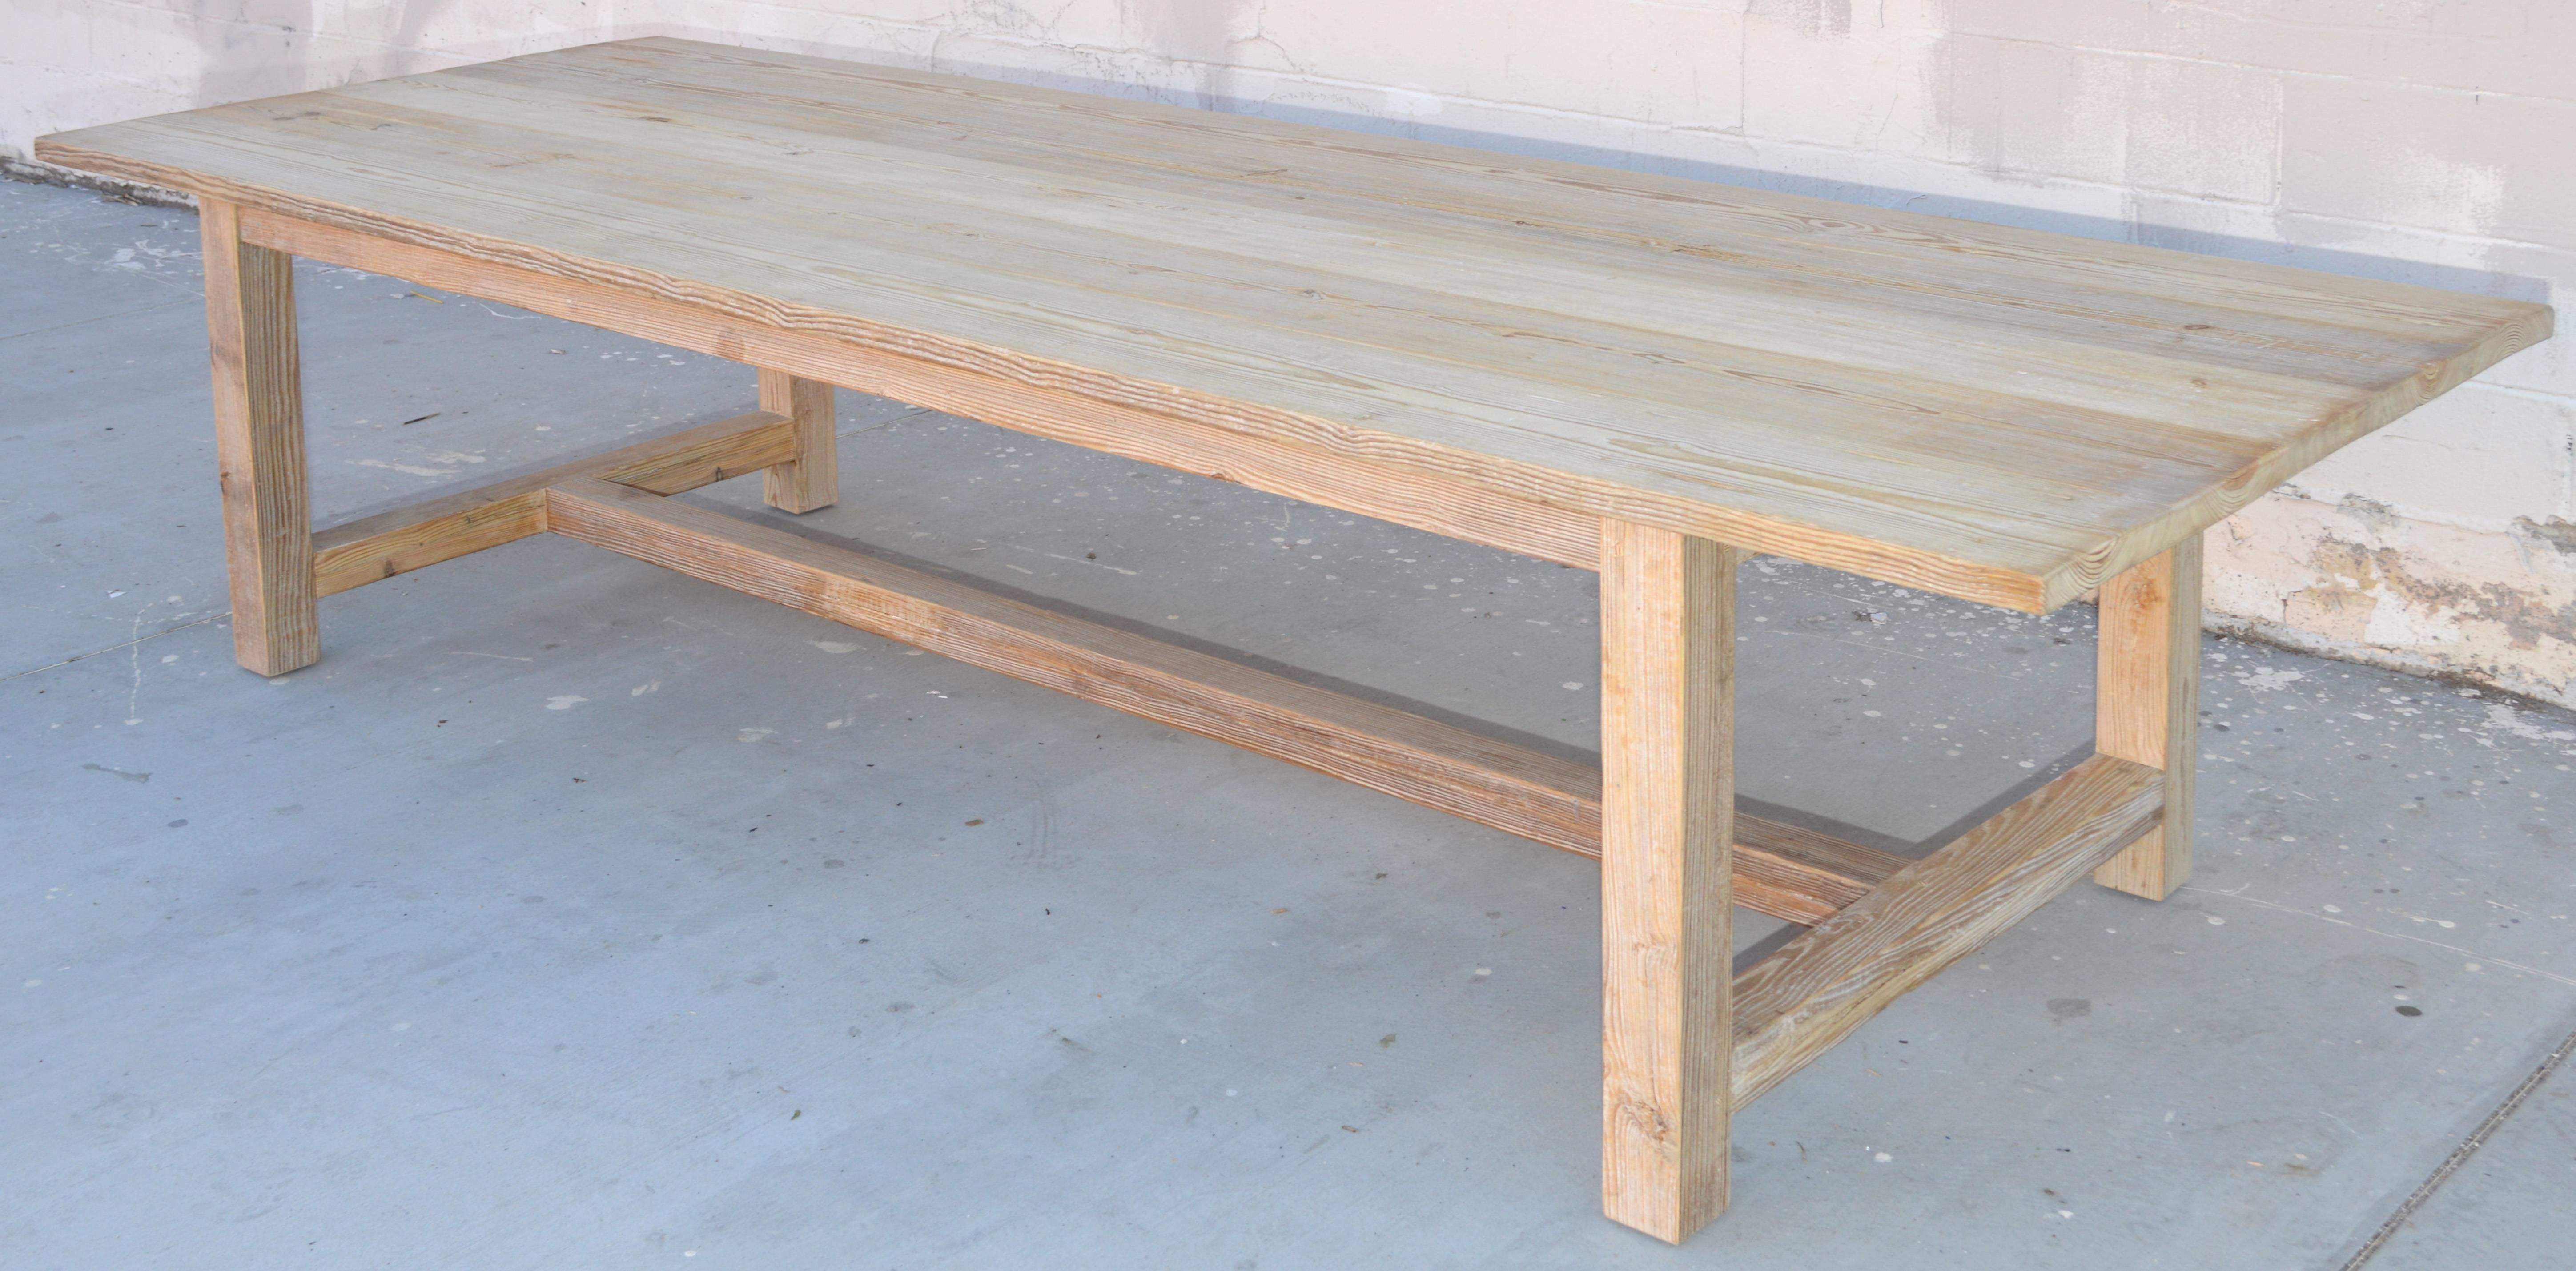 Rustic Farm Or Harvest Table Made From Vintage, Reclaimed Wood With Natural  Distress. The